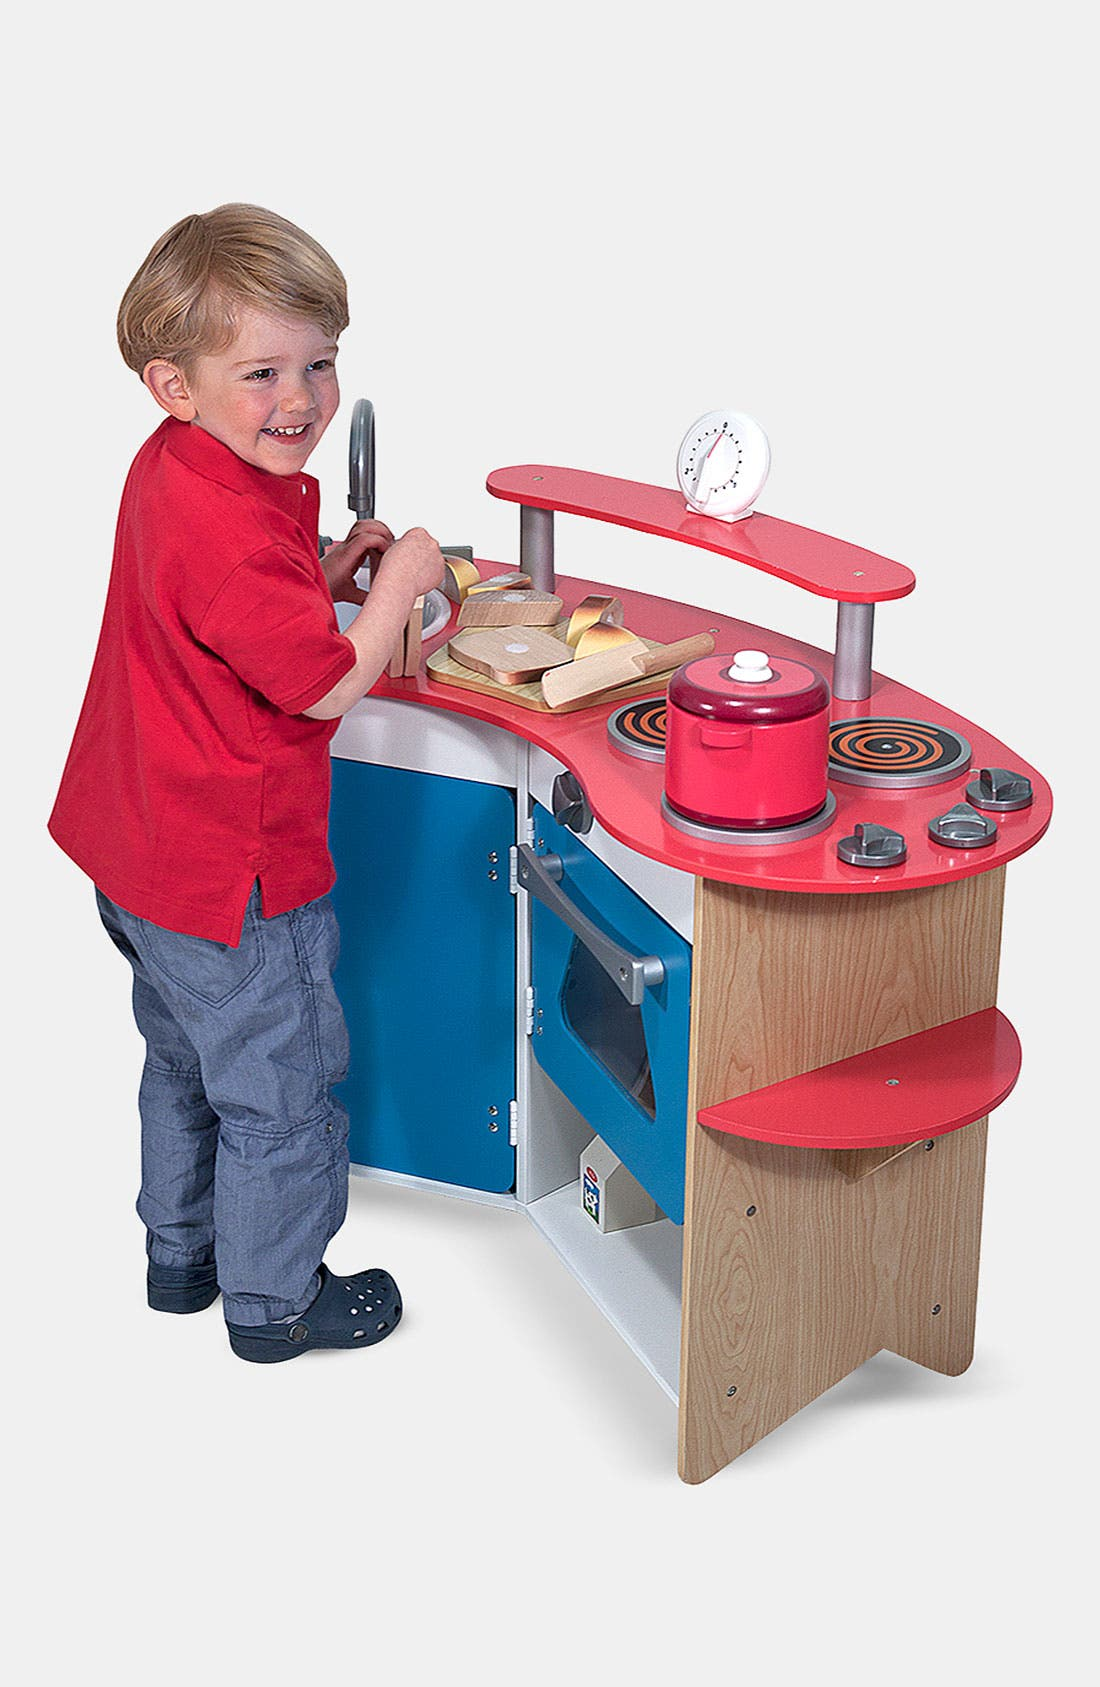 Main Image - Melissa & Doug 'Cook's Corner' Wooden Play Kitchen